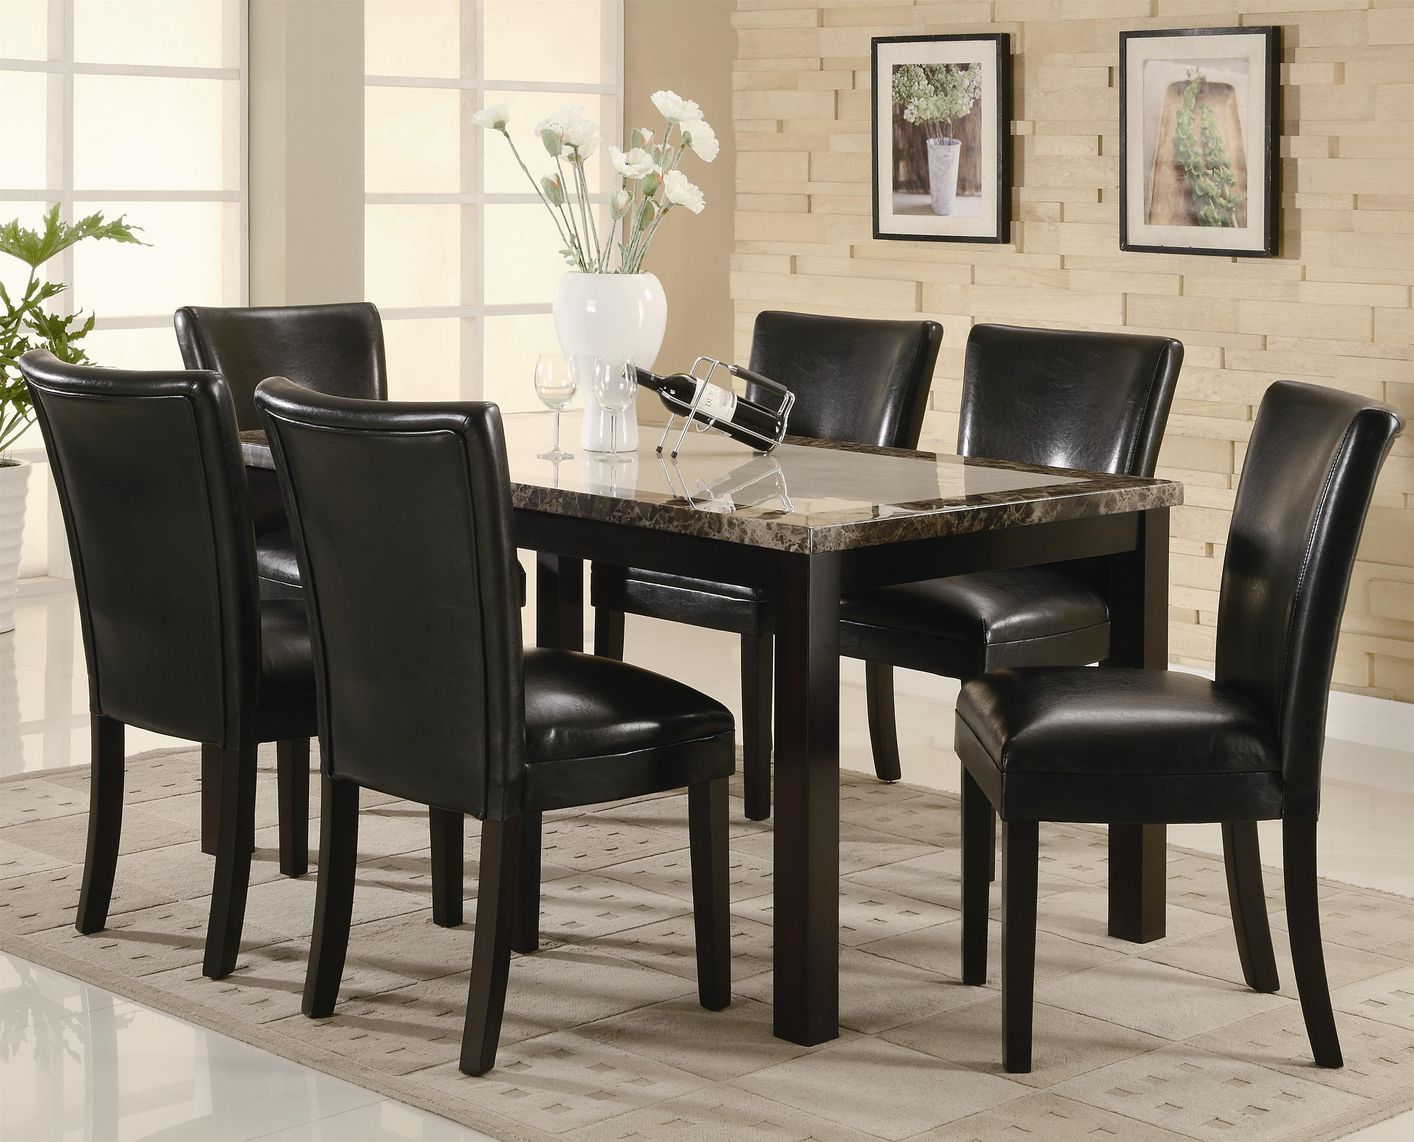 Carter Dark Brown Wood And Marble Dining Table Set. Carter Dark Brown Wood And Marble Dining Table Set   Steal A Sofa